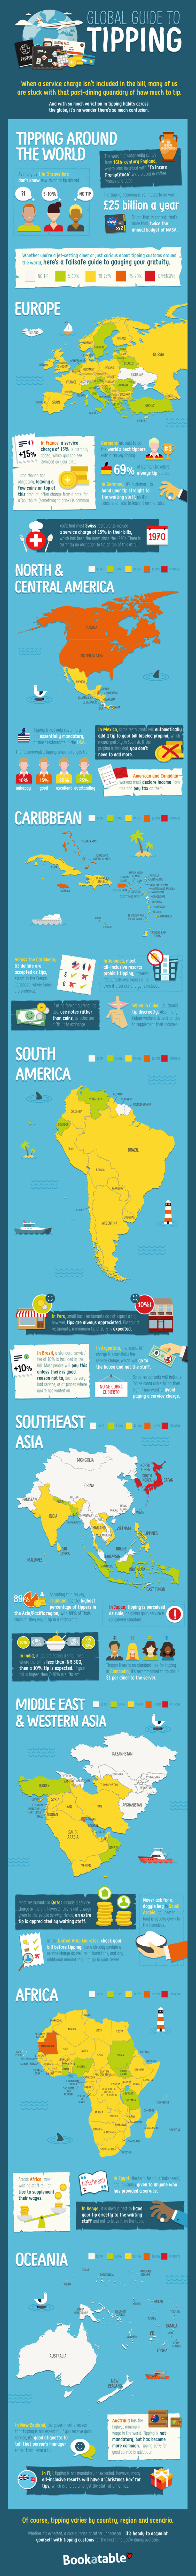 How Much to Tip Around the World - Travel Infographic